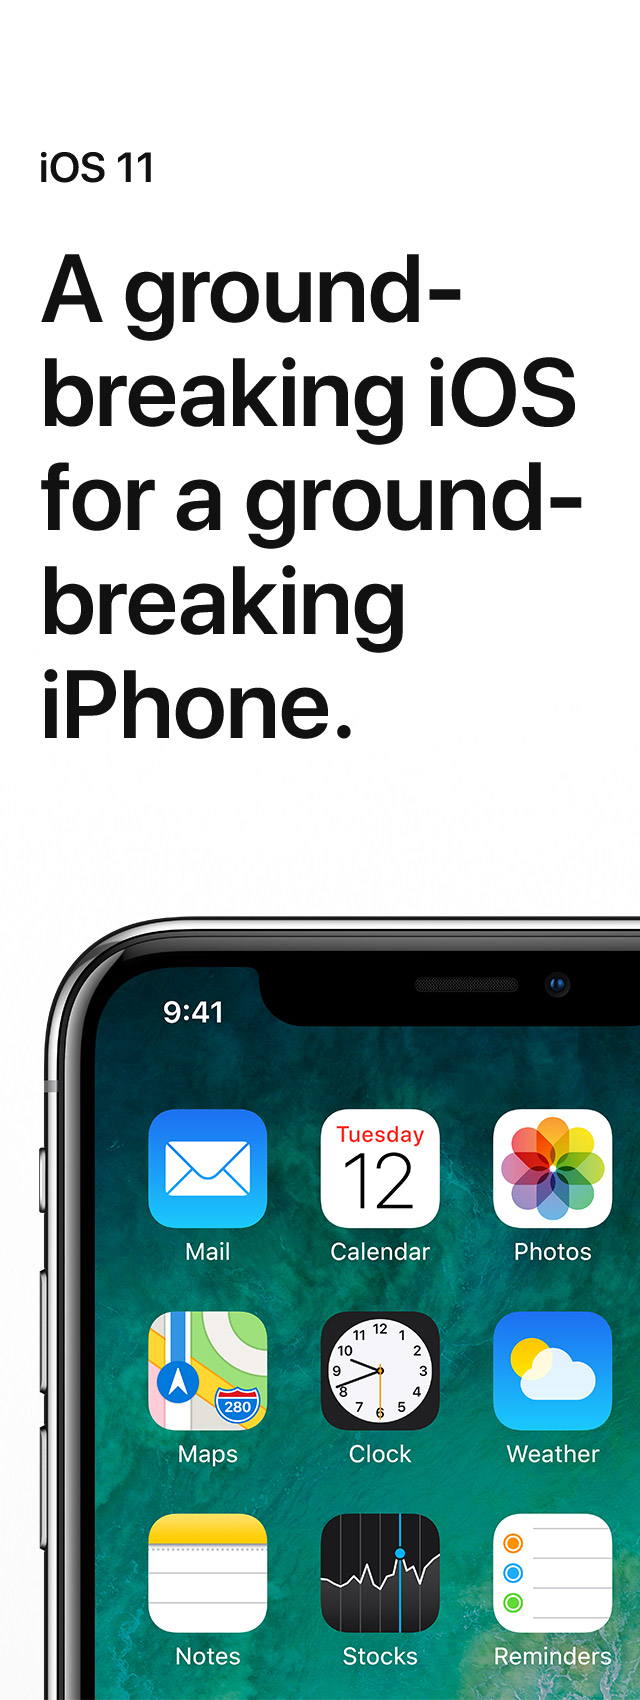 A groundbreaking iOS for a groundbreaking iPhone.